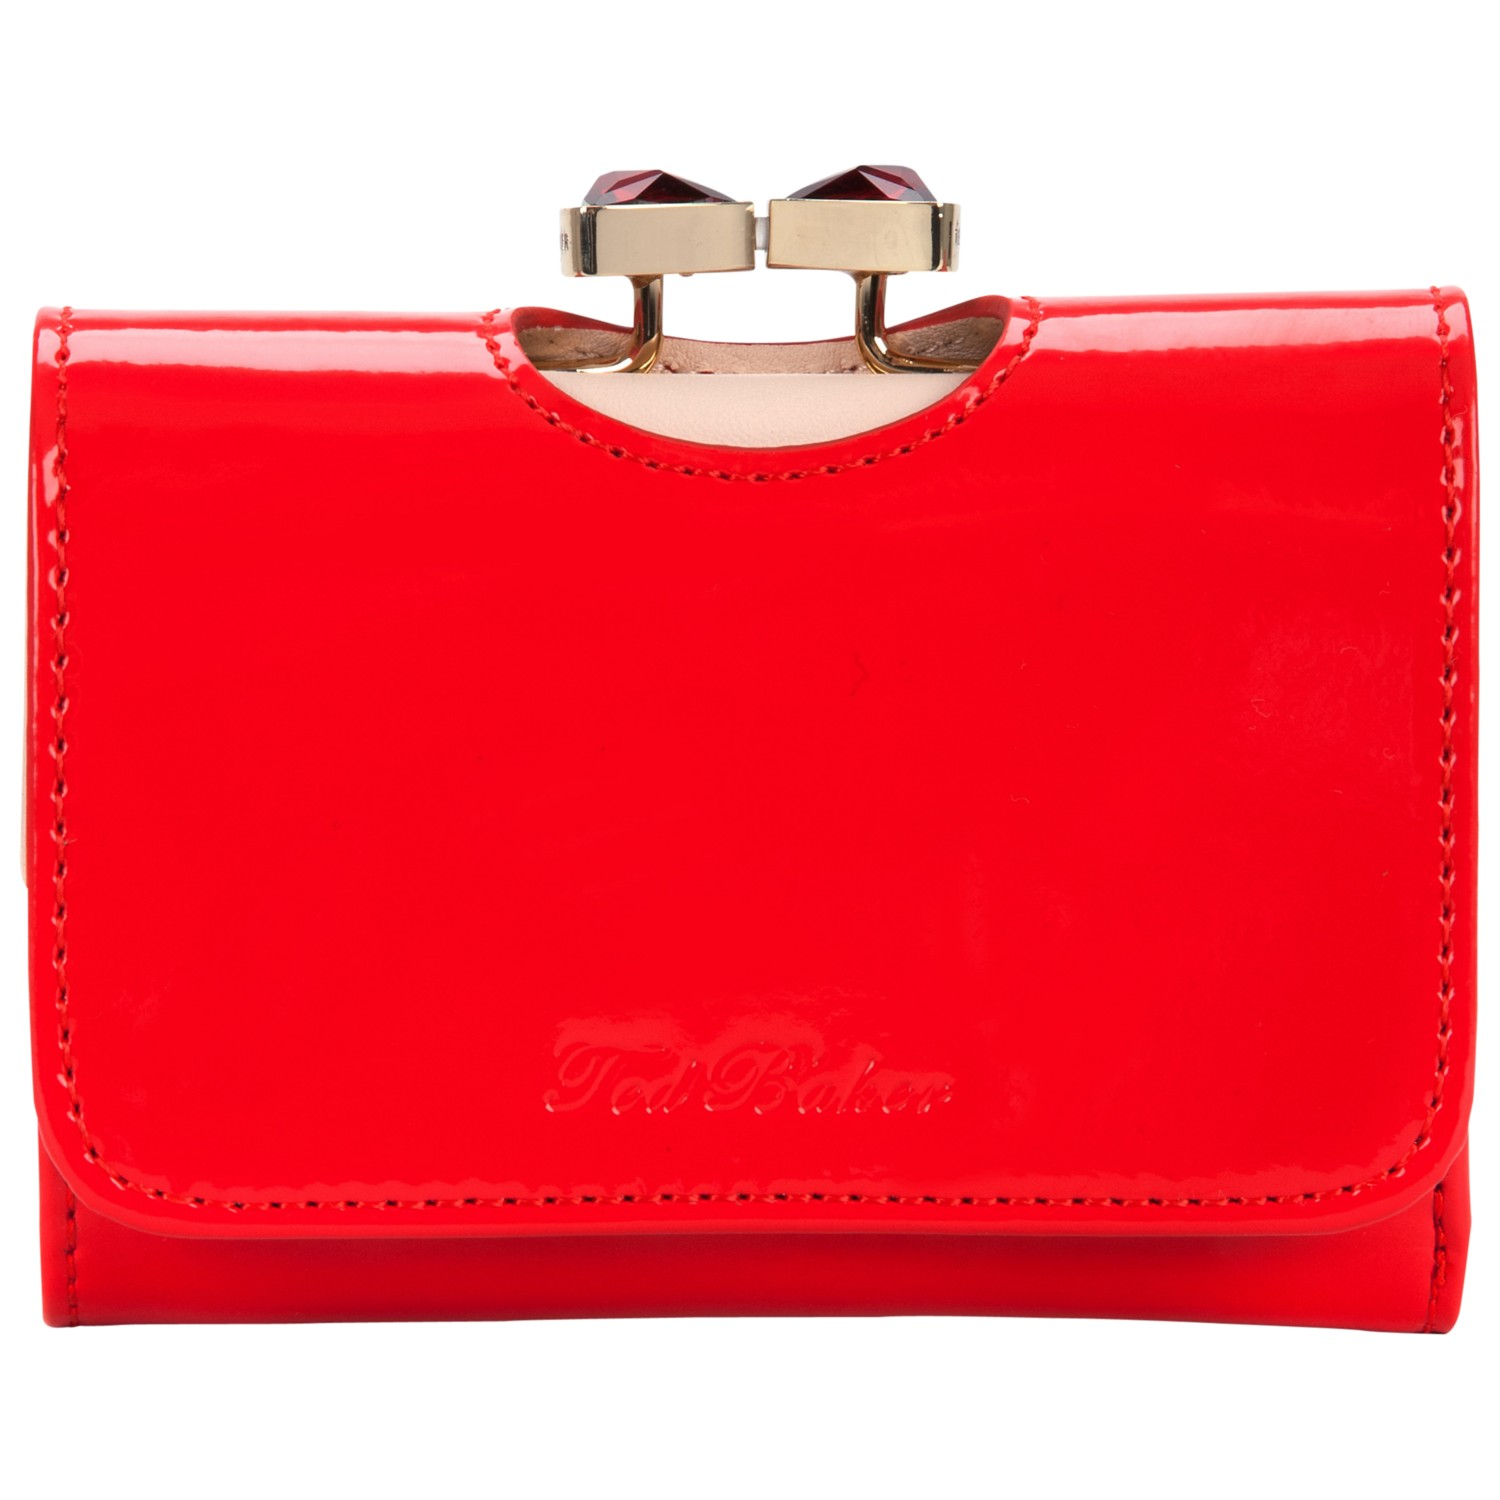 ce6a89ac1 Ted Baker Tyro Crystal Bow Bobble Patent Small Purse in Red - Lyst